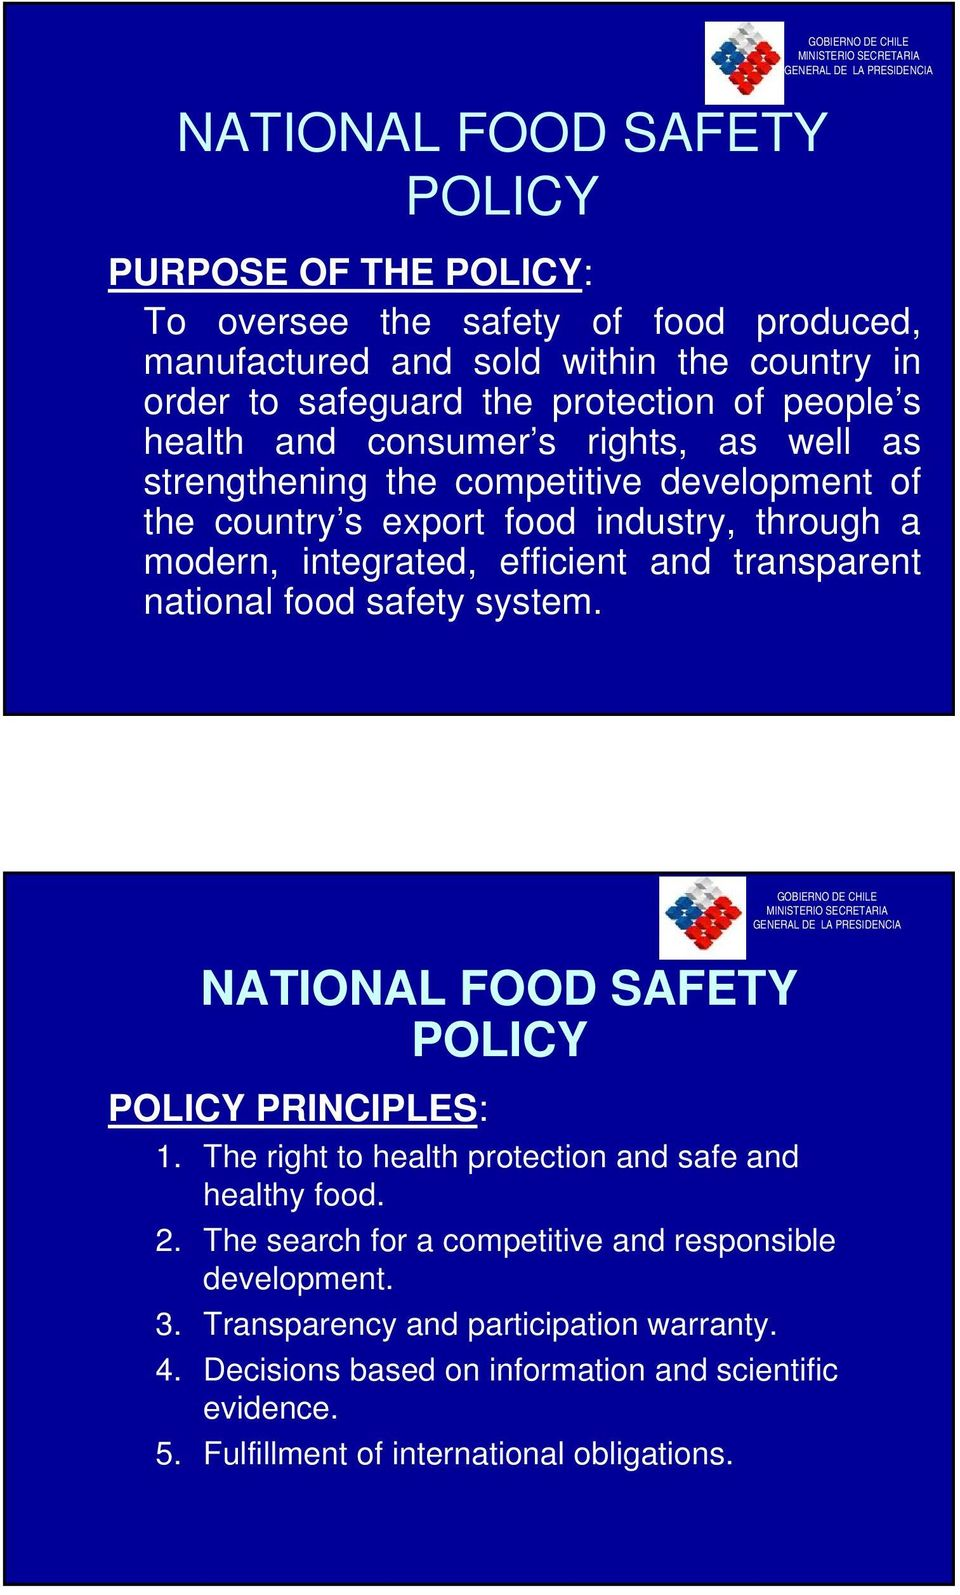 integrated, efficient and transparent national food safety system. NATIONAL FOOD SAFETY POLICY GOBIERNO DE CHILE MINISTERIO SECRETARIA GENERAL DE LA PRESIDENCIA POLICY PRINCIPLES: 1.